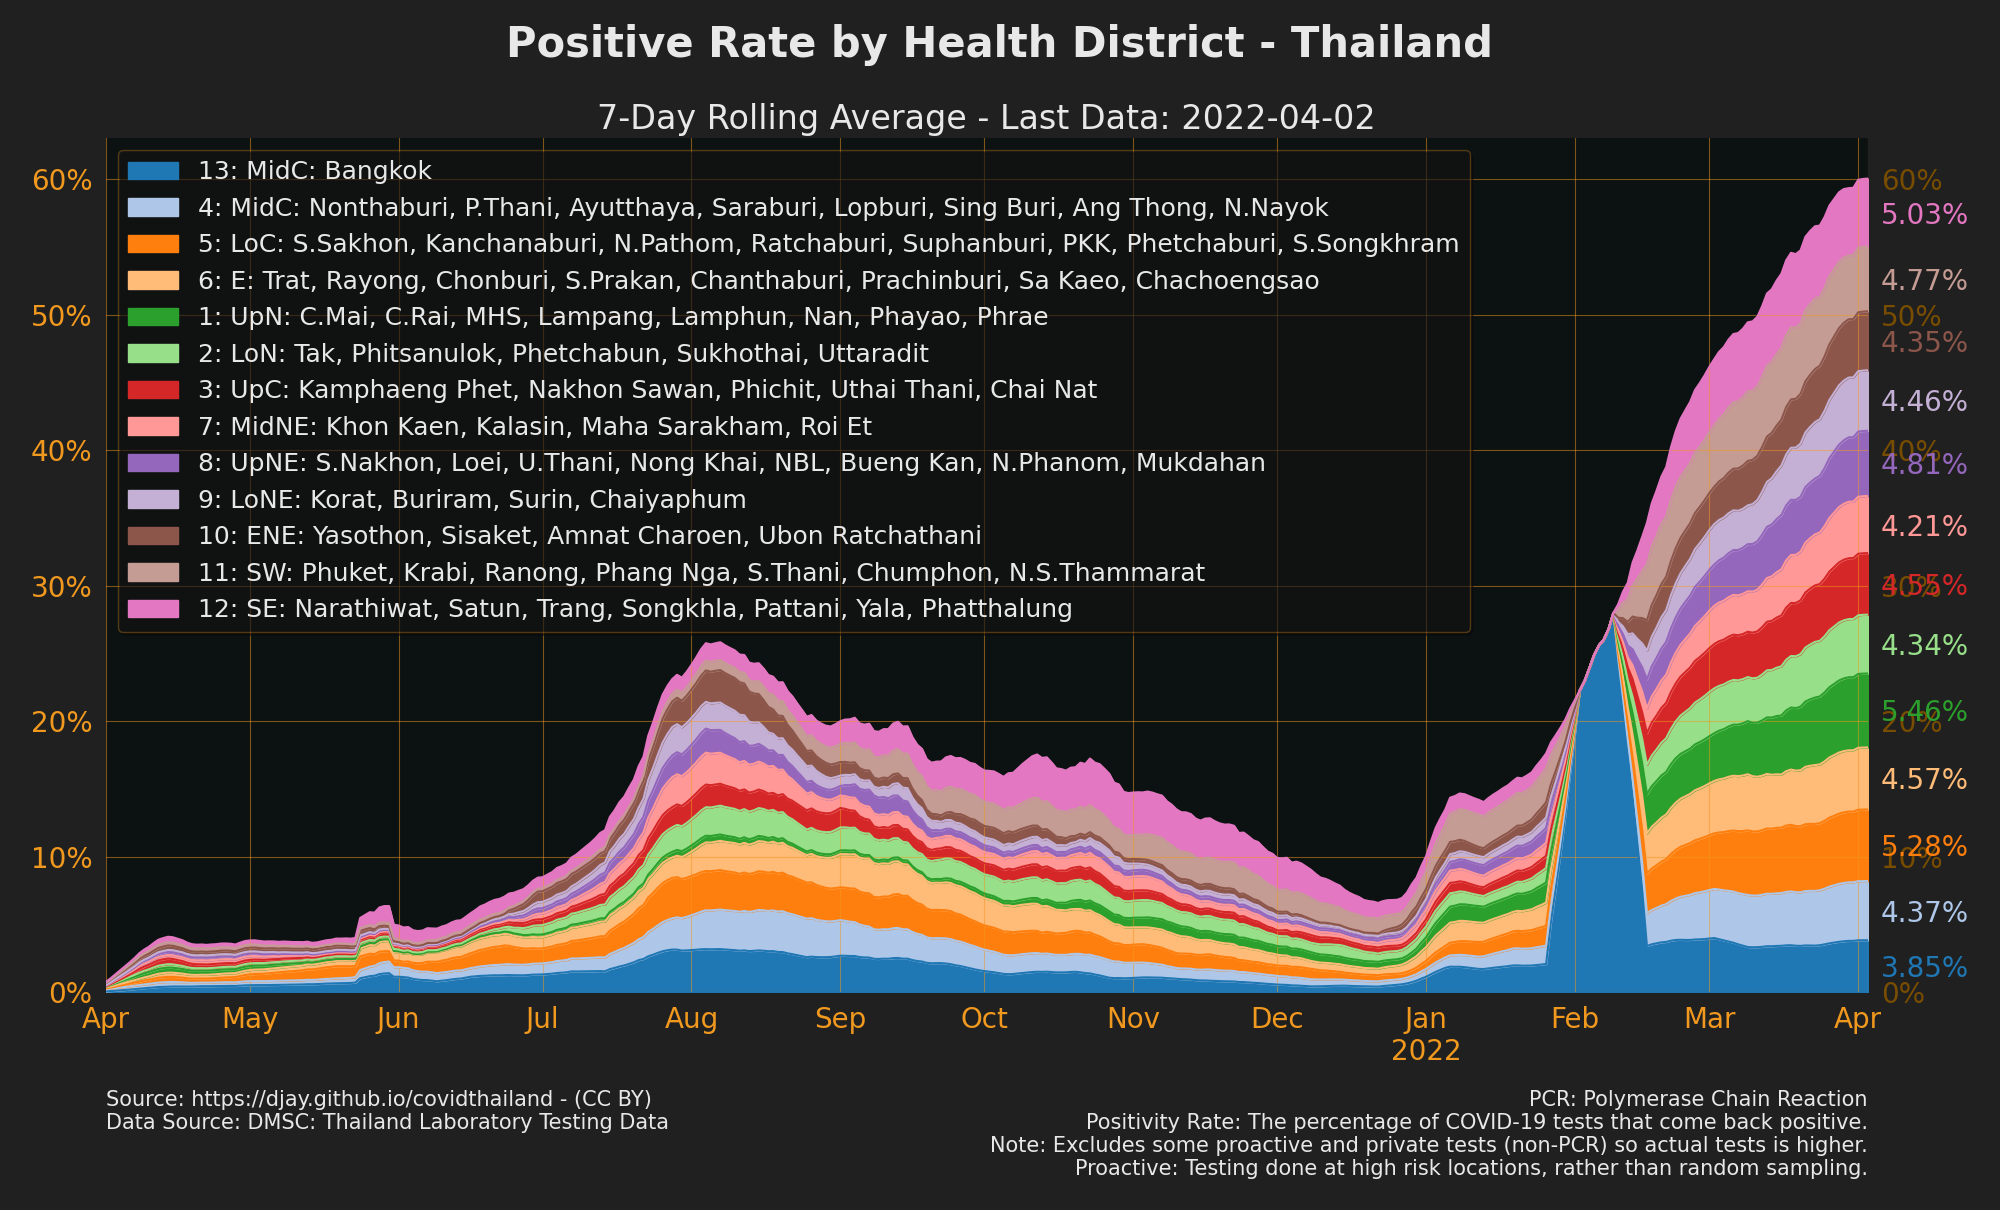 Proportion of positive rate contributed by health districts